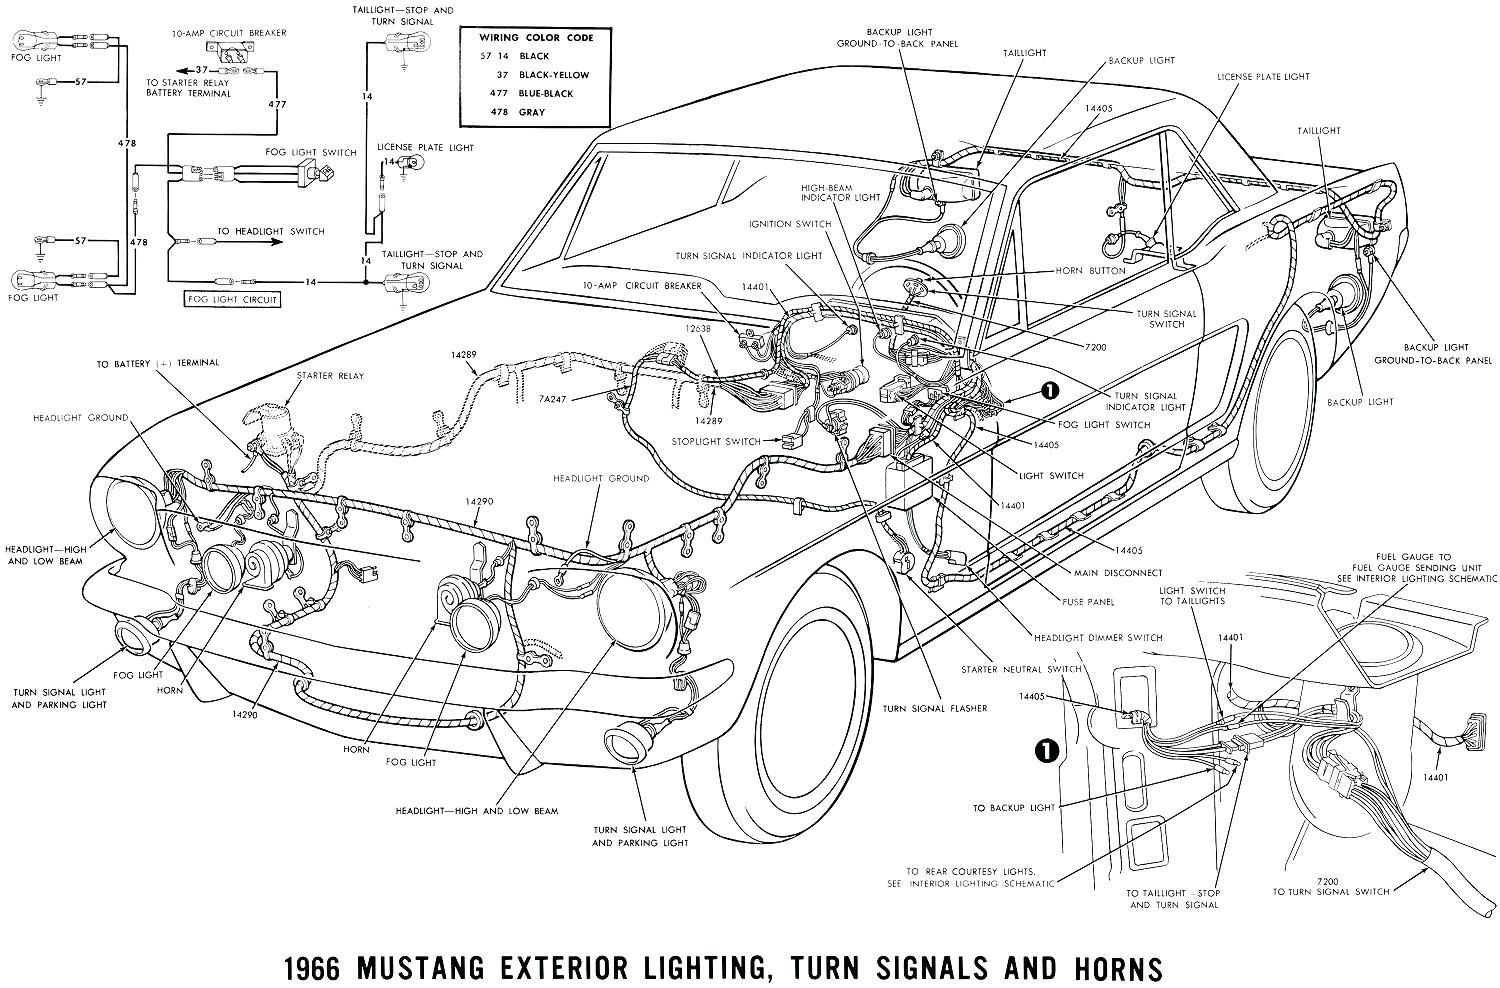 Labeled Car Dashboard Diagram Mustang Exterior Lighting Turn Signals Horn Unit Wiring For 1954 Chevrolet Truck And Horns 1958 Chevy